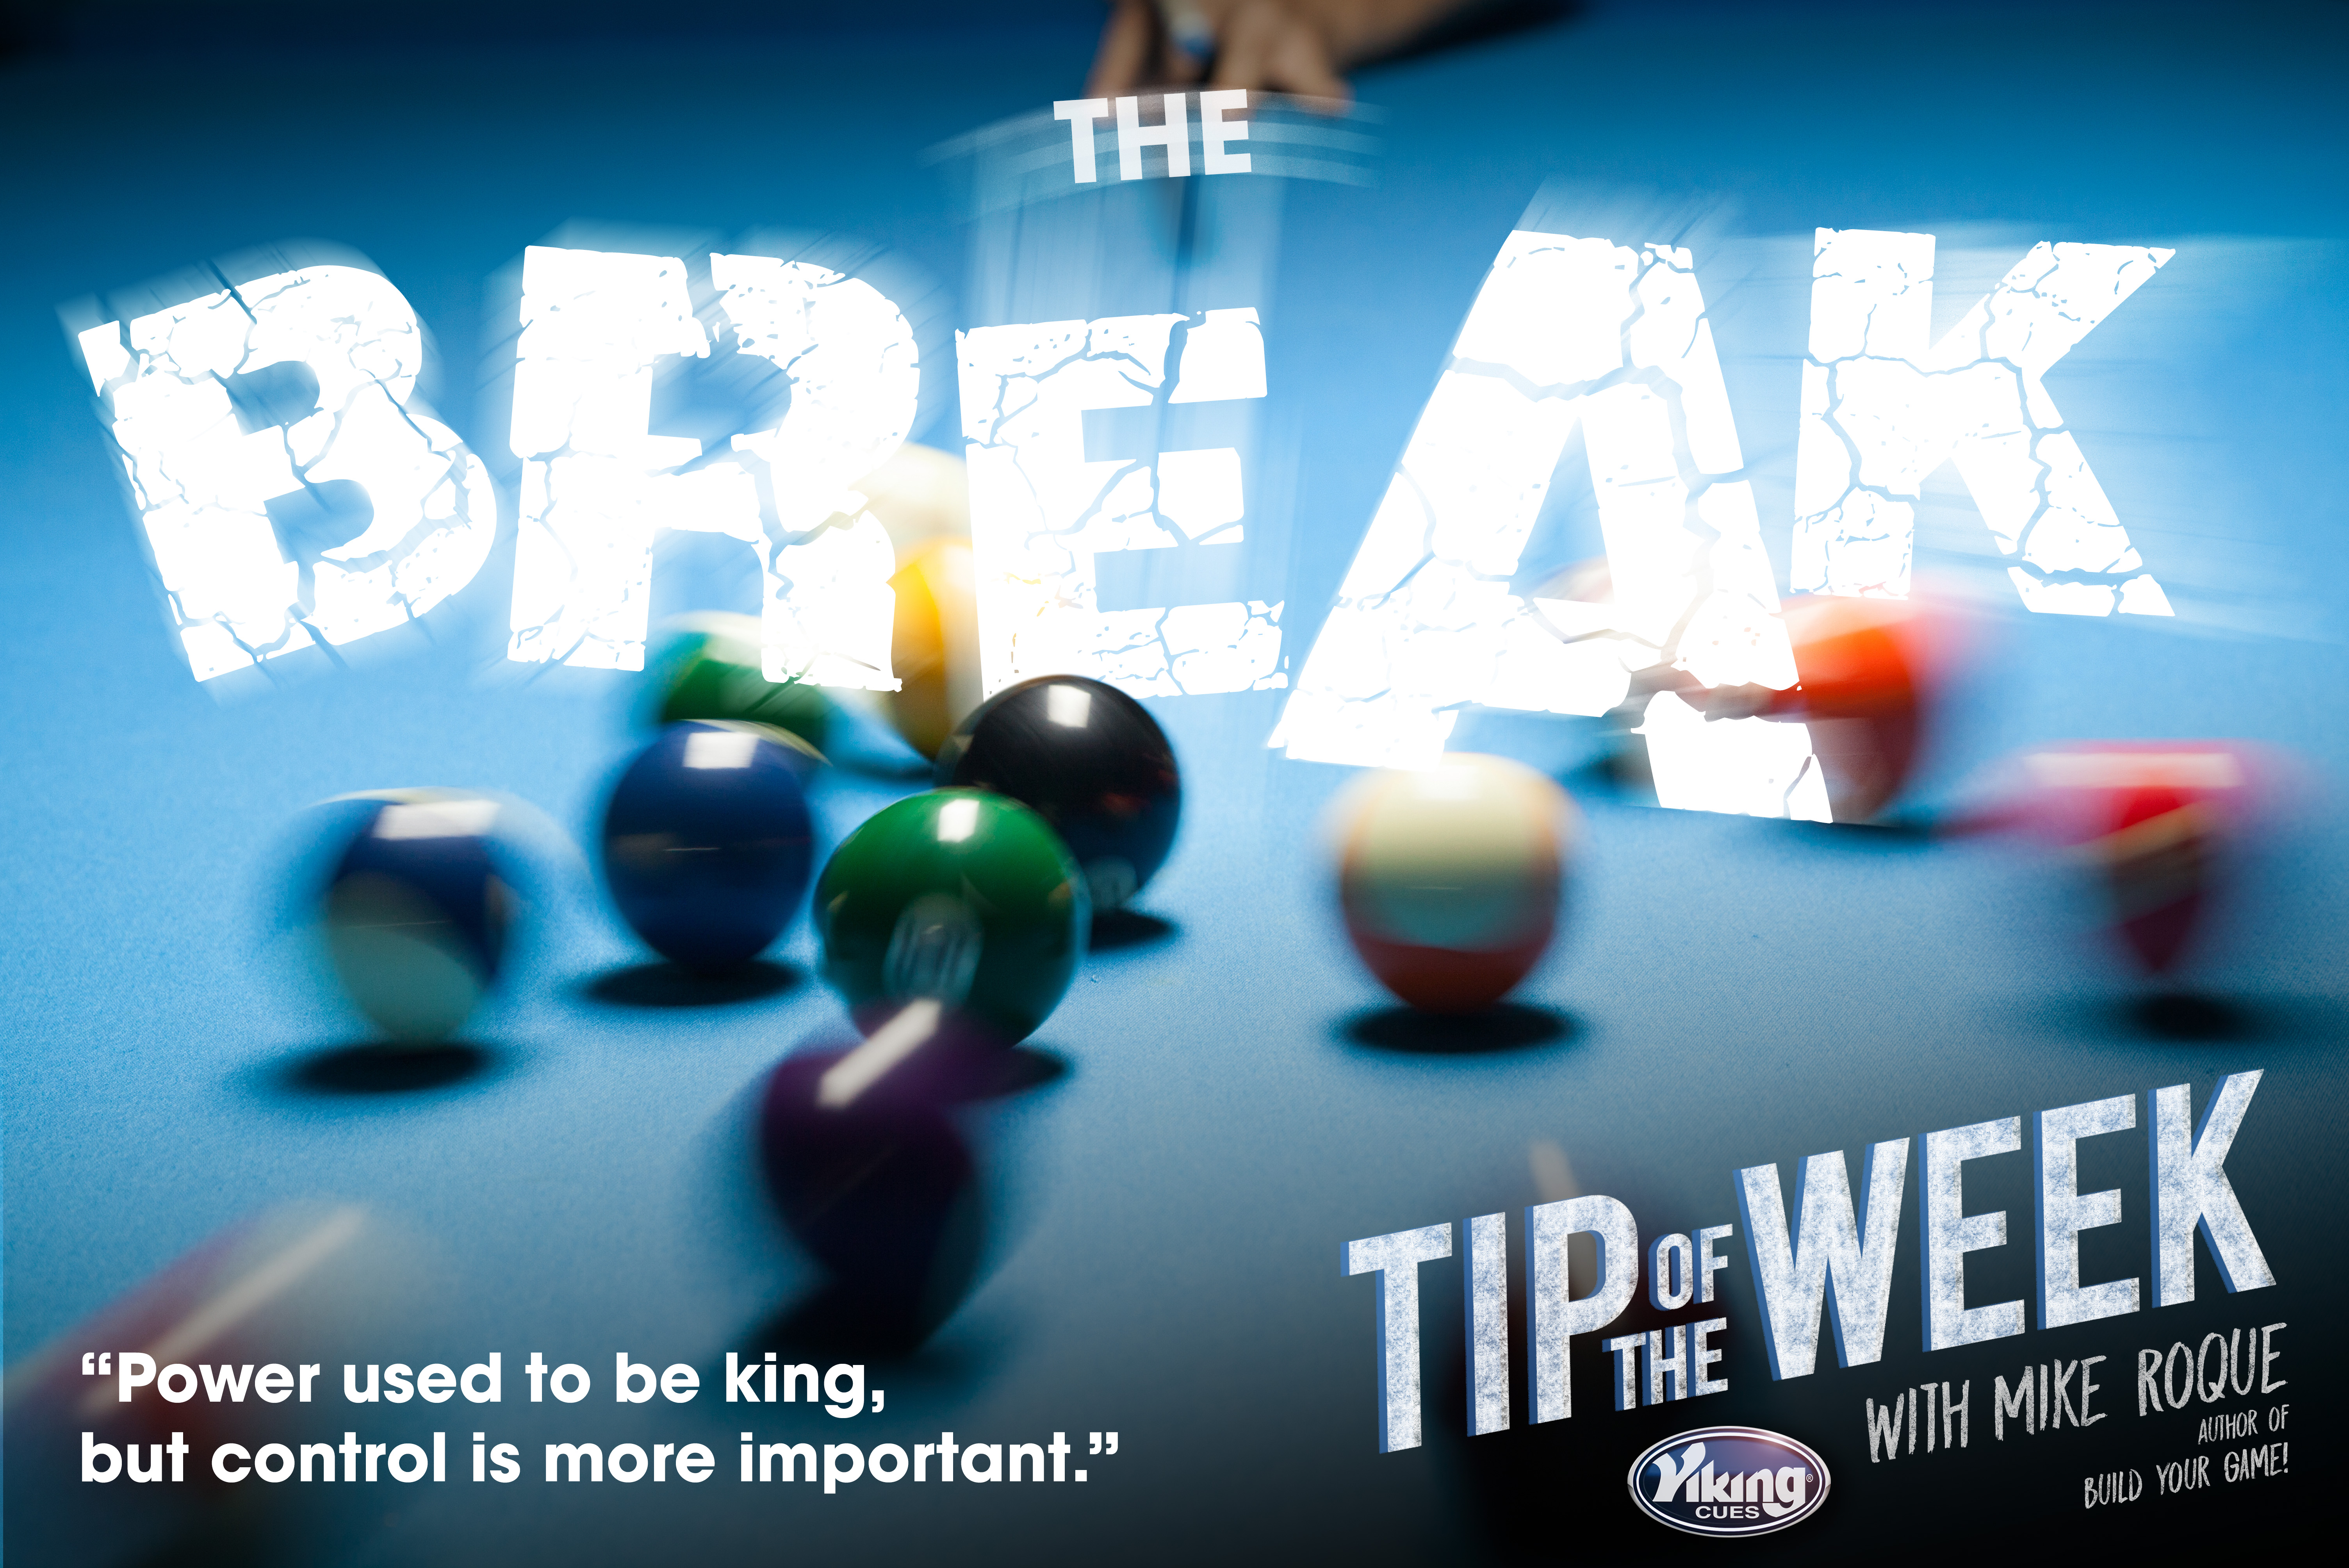 THE BREAK - Viking Cues Tip of the Week with Mike Roque